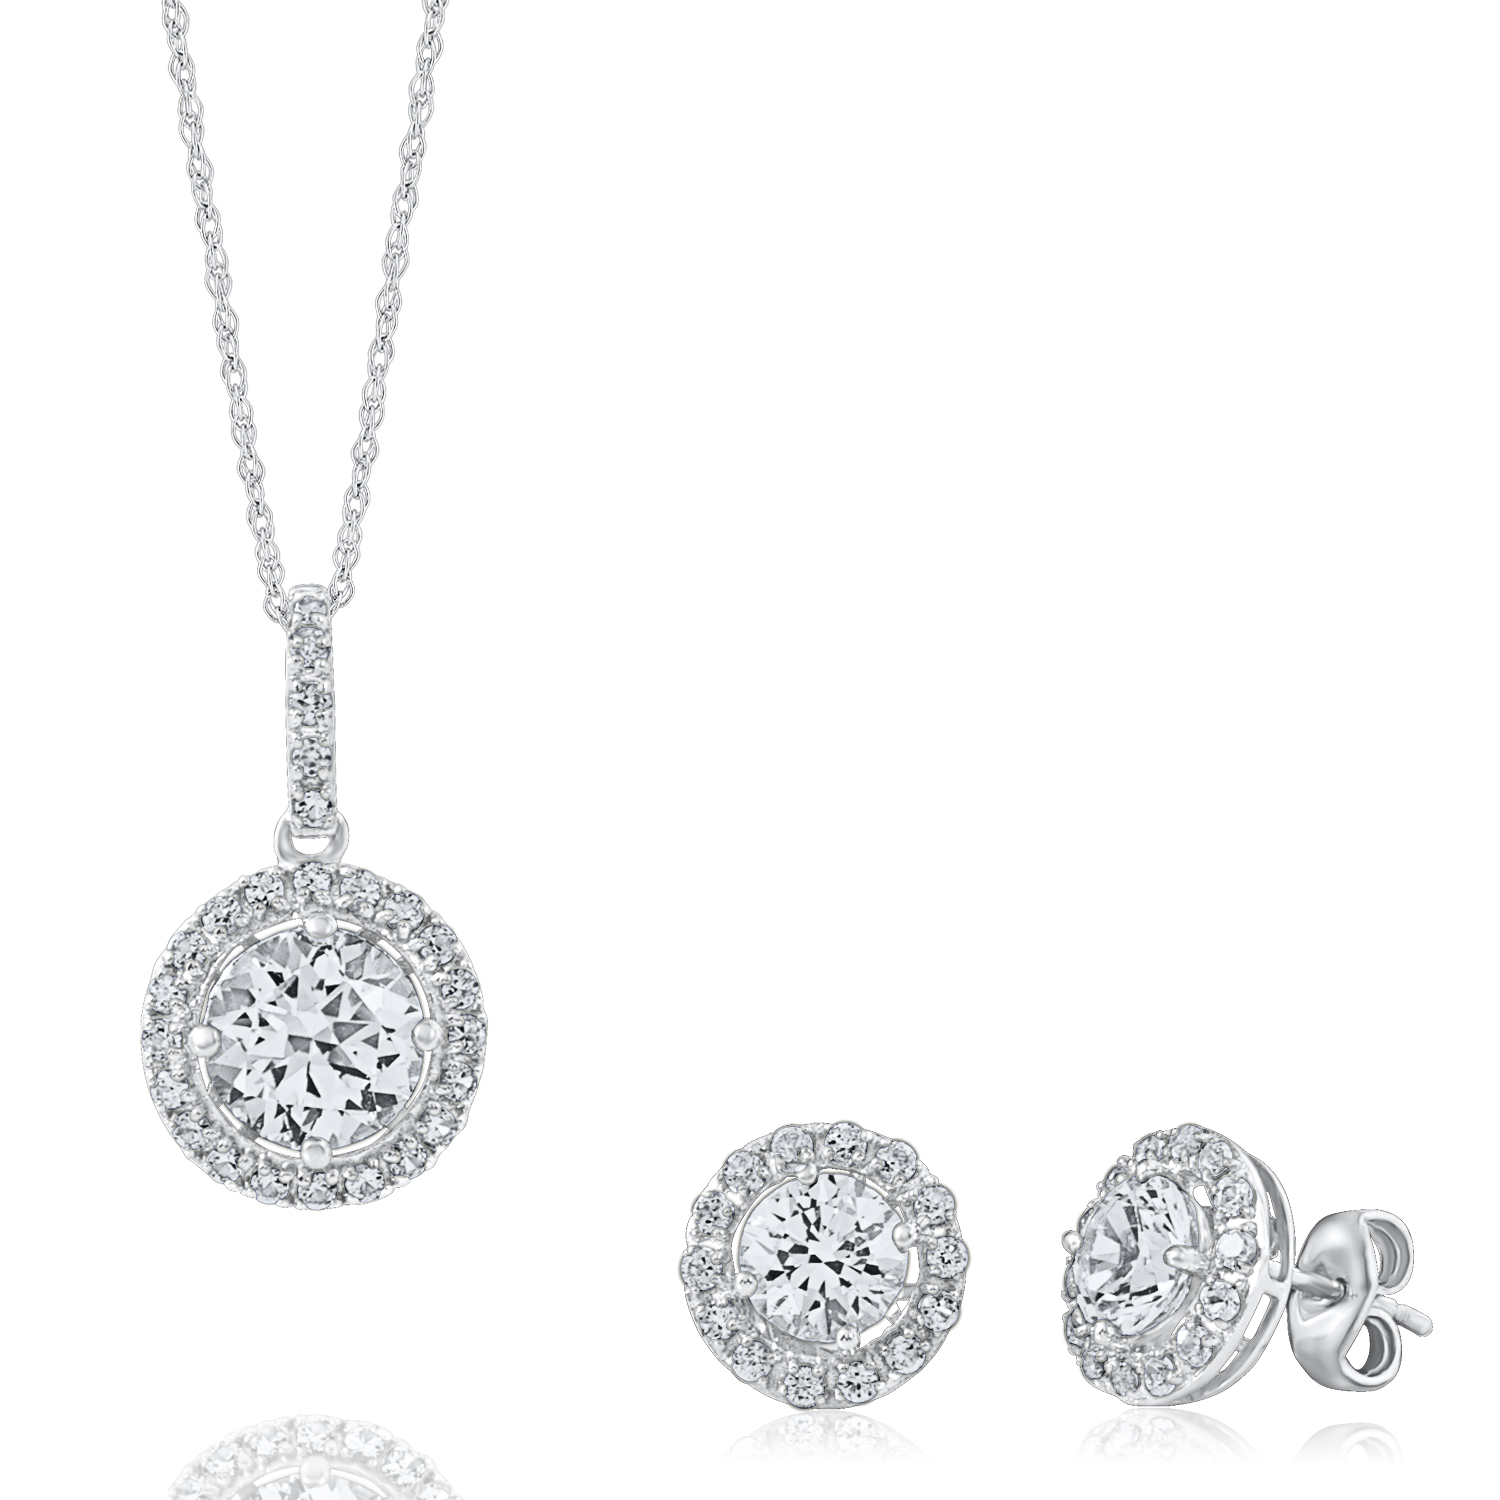 Get Free Jewelry Gifts from Helzberg!